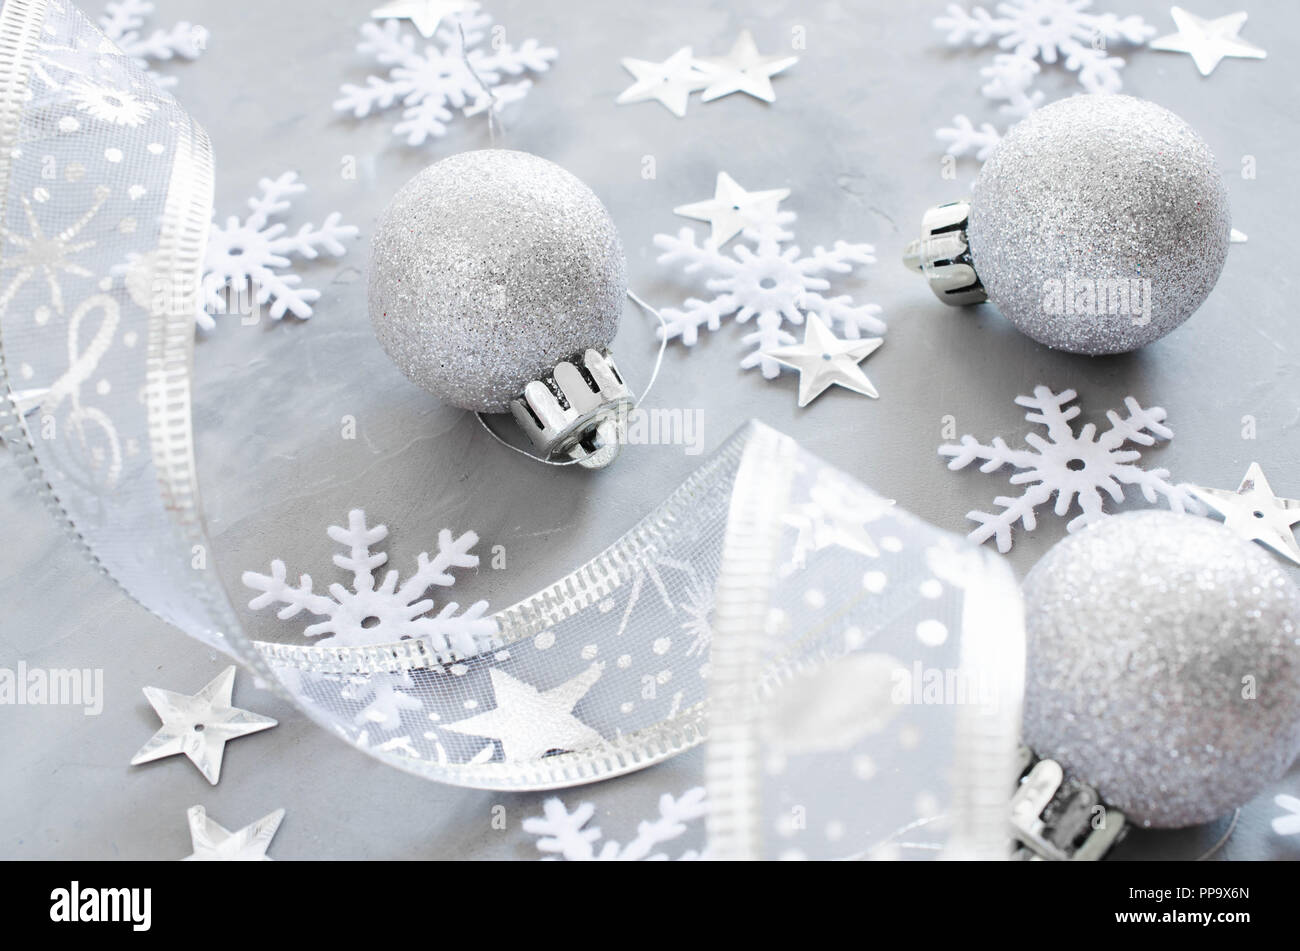 Silver decorations xmas decoration stock photos & silver decorations